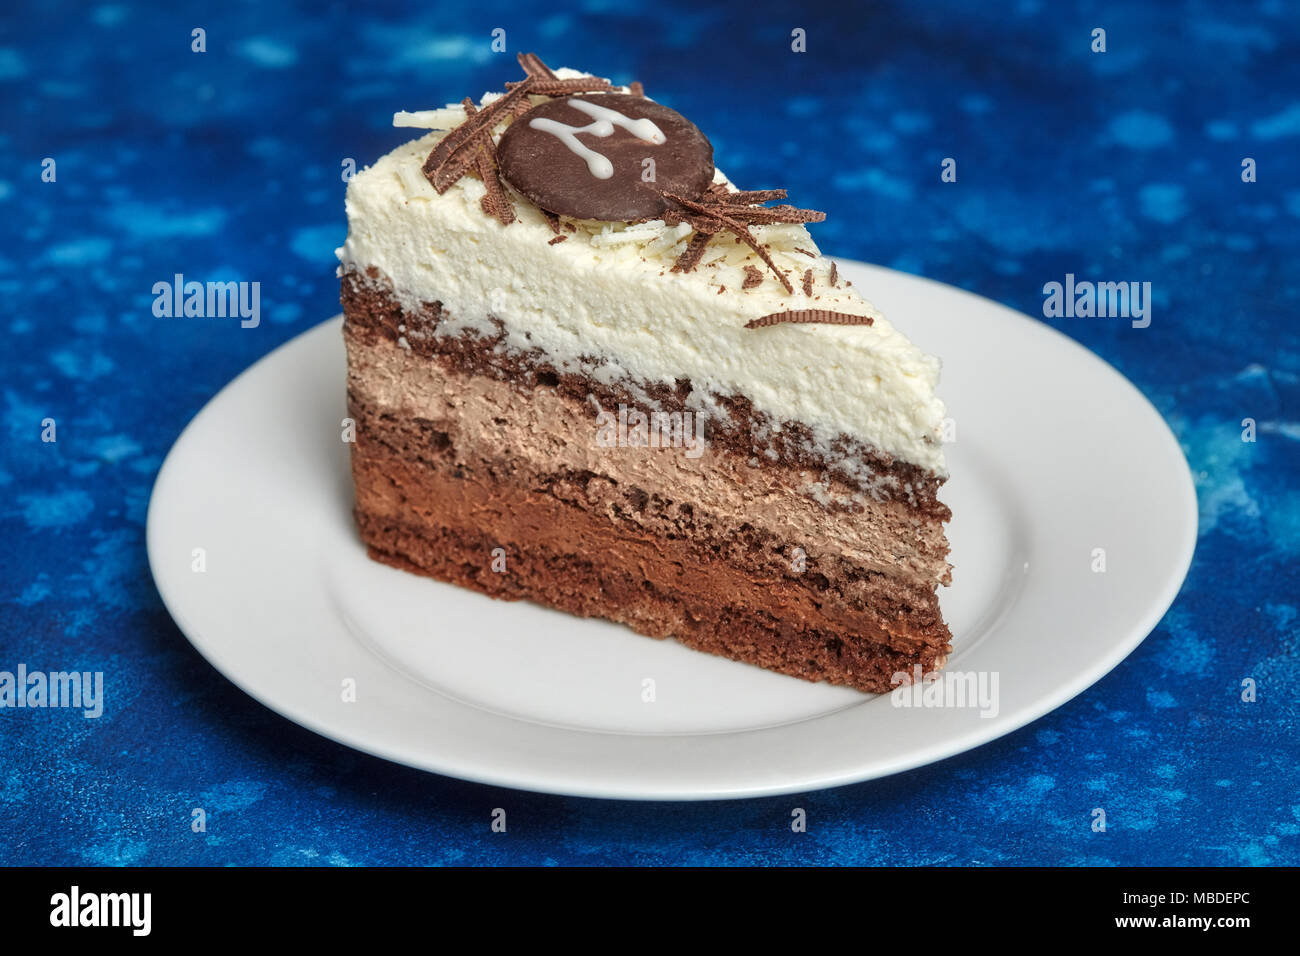 Piece of delicious mousse cake with three different kind of chocolate on white plate. Blue background Stock Photo